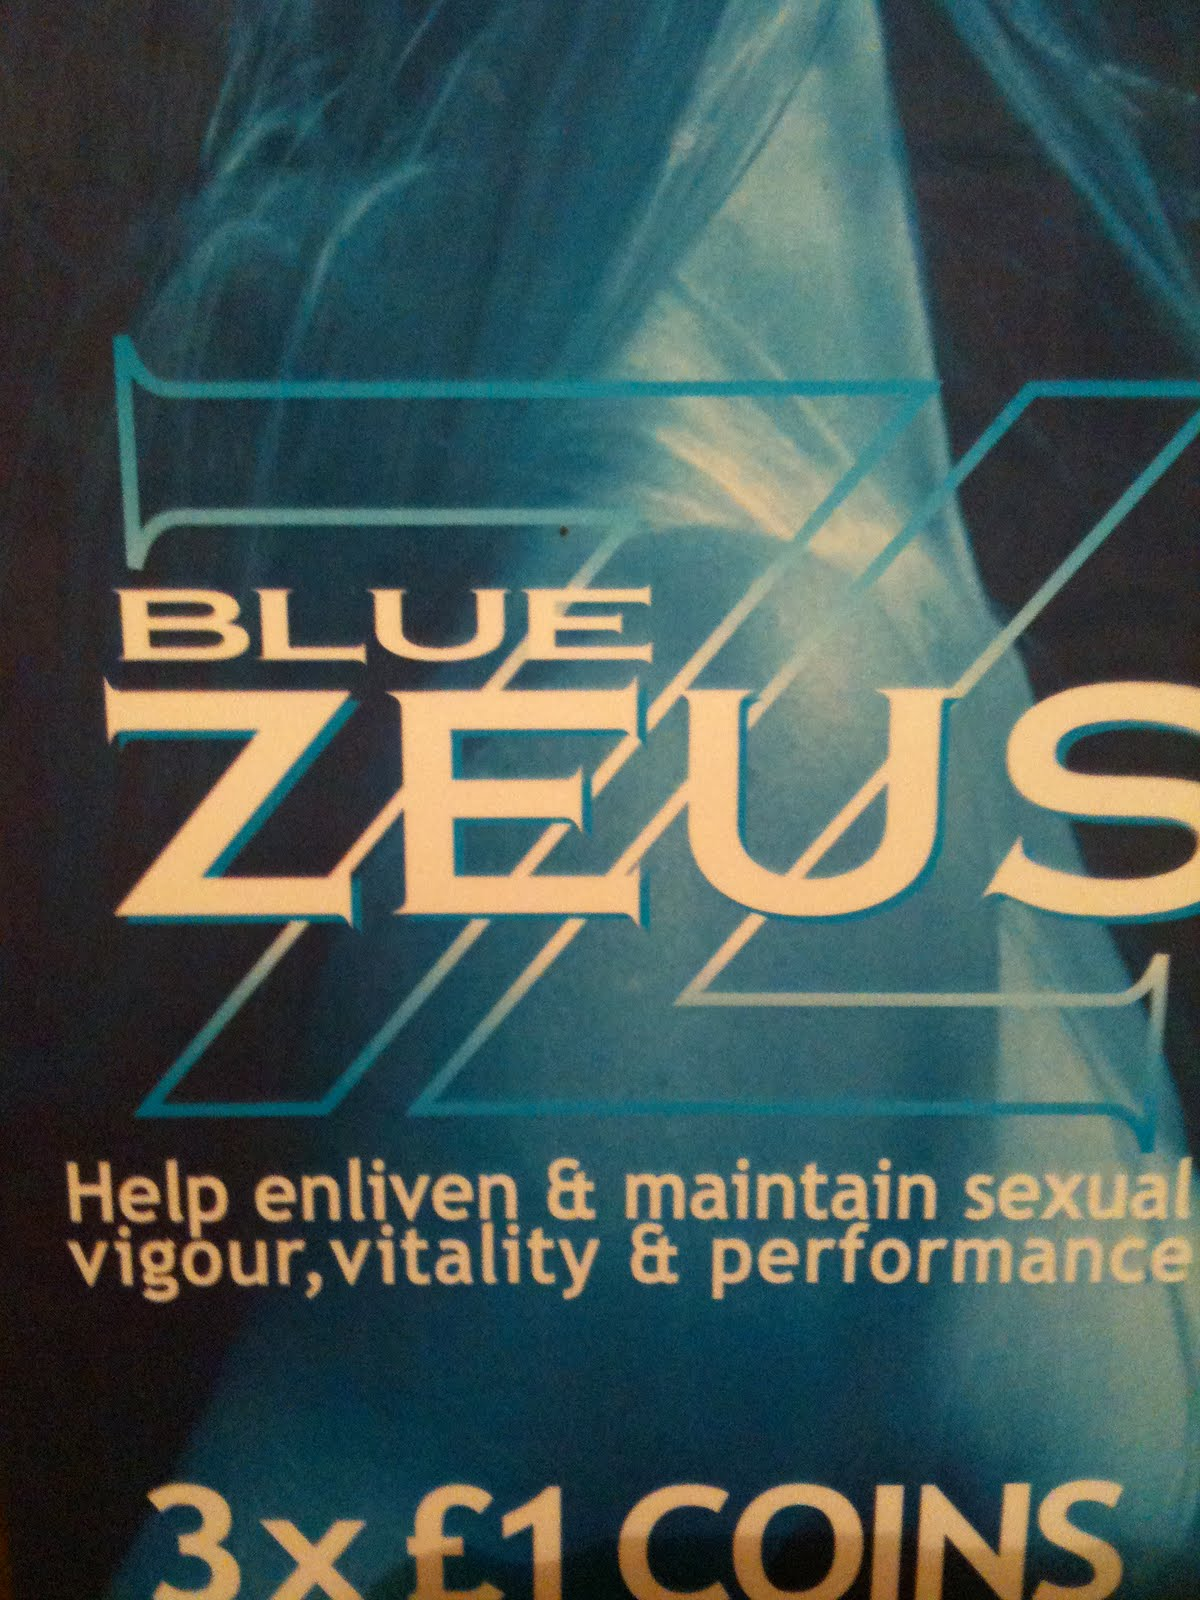 Herbal viagra blue zeus